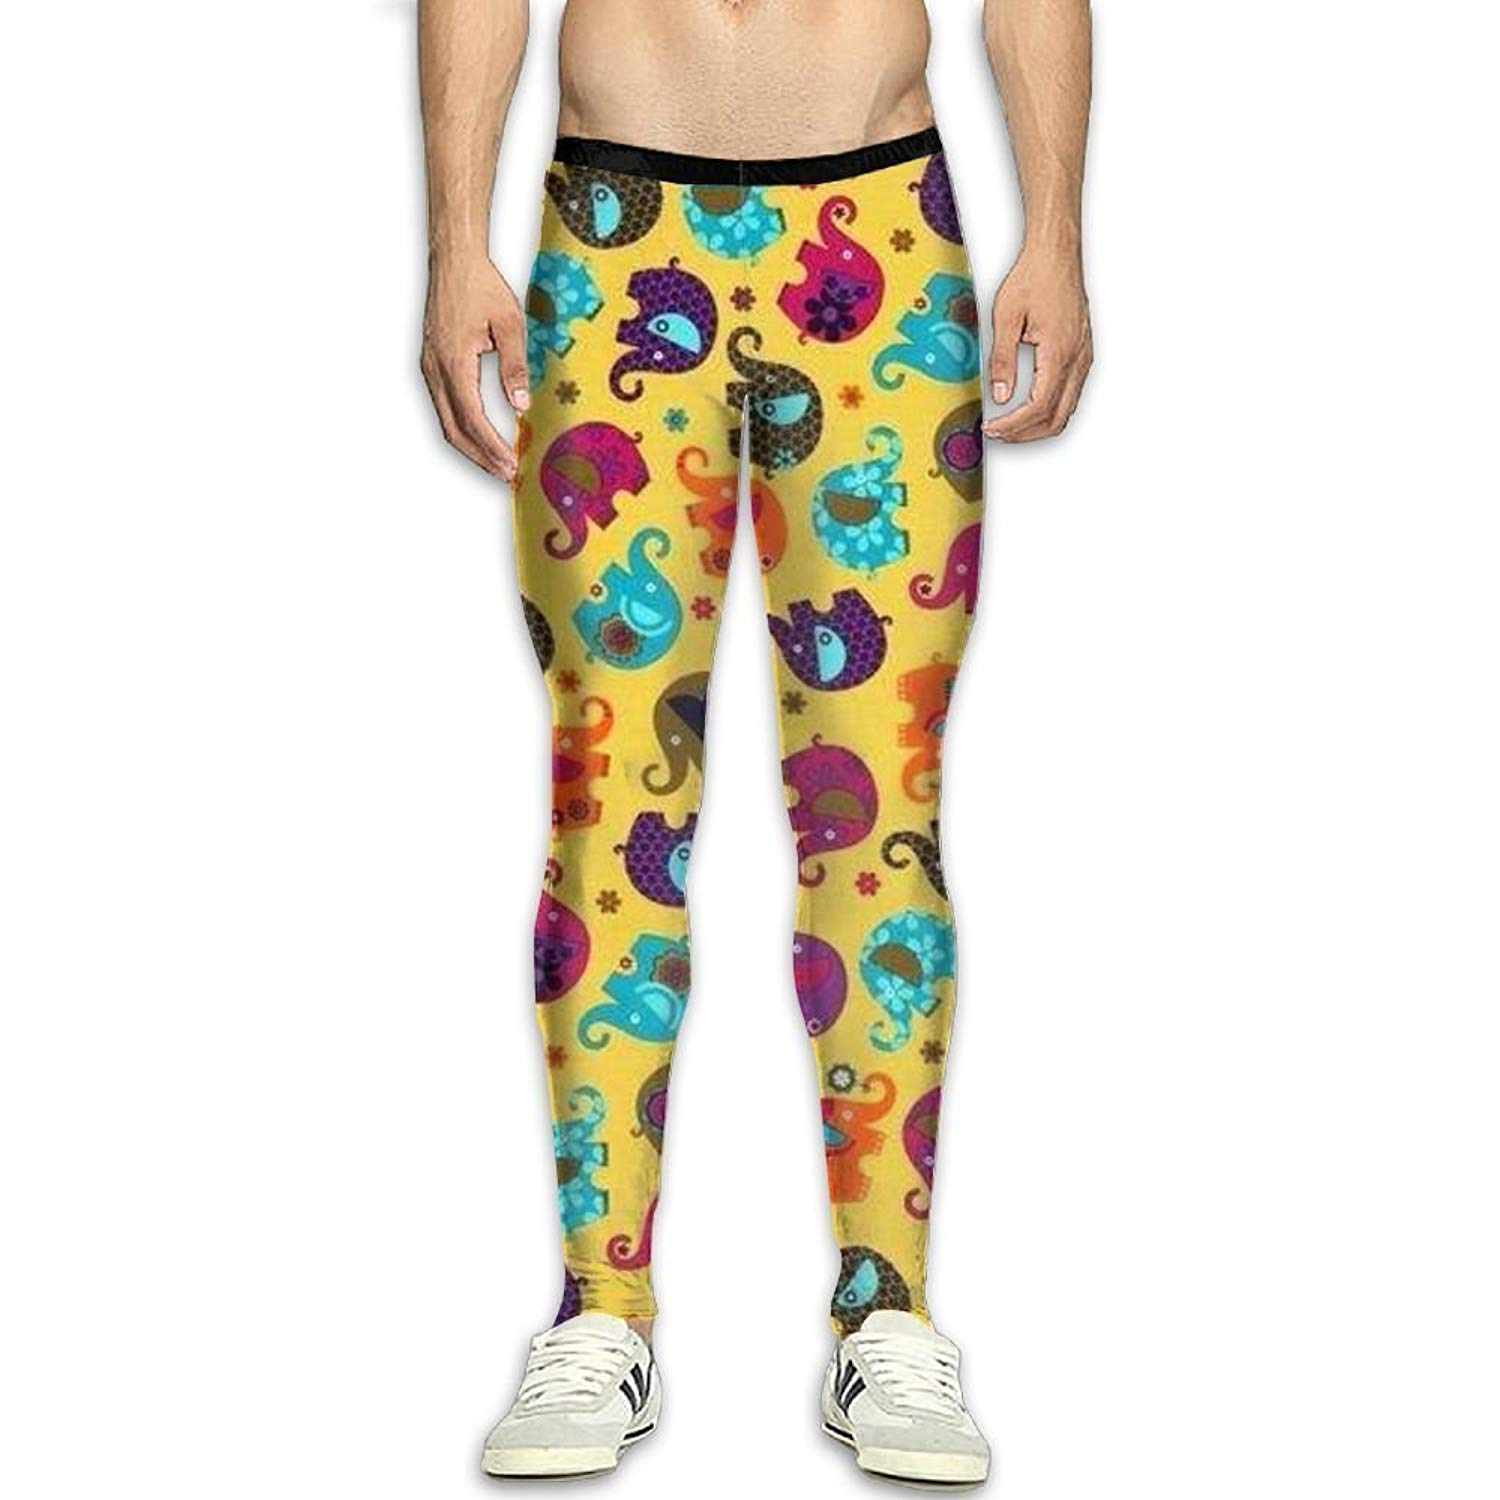 f260405f2c1c Olivefox Fit Clothes UV for Men Compression Sports and Fitness Tights  Workout Pants Breathable Cartoon Elephant